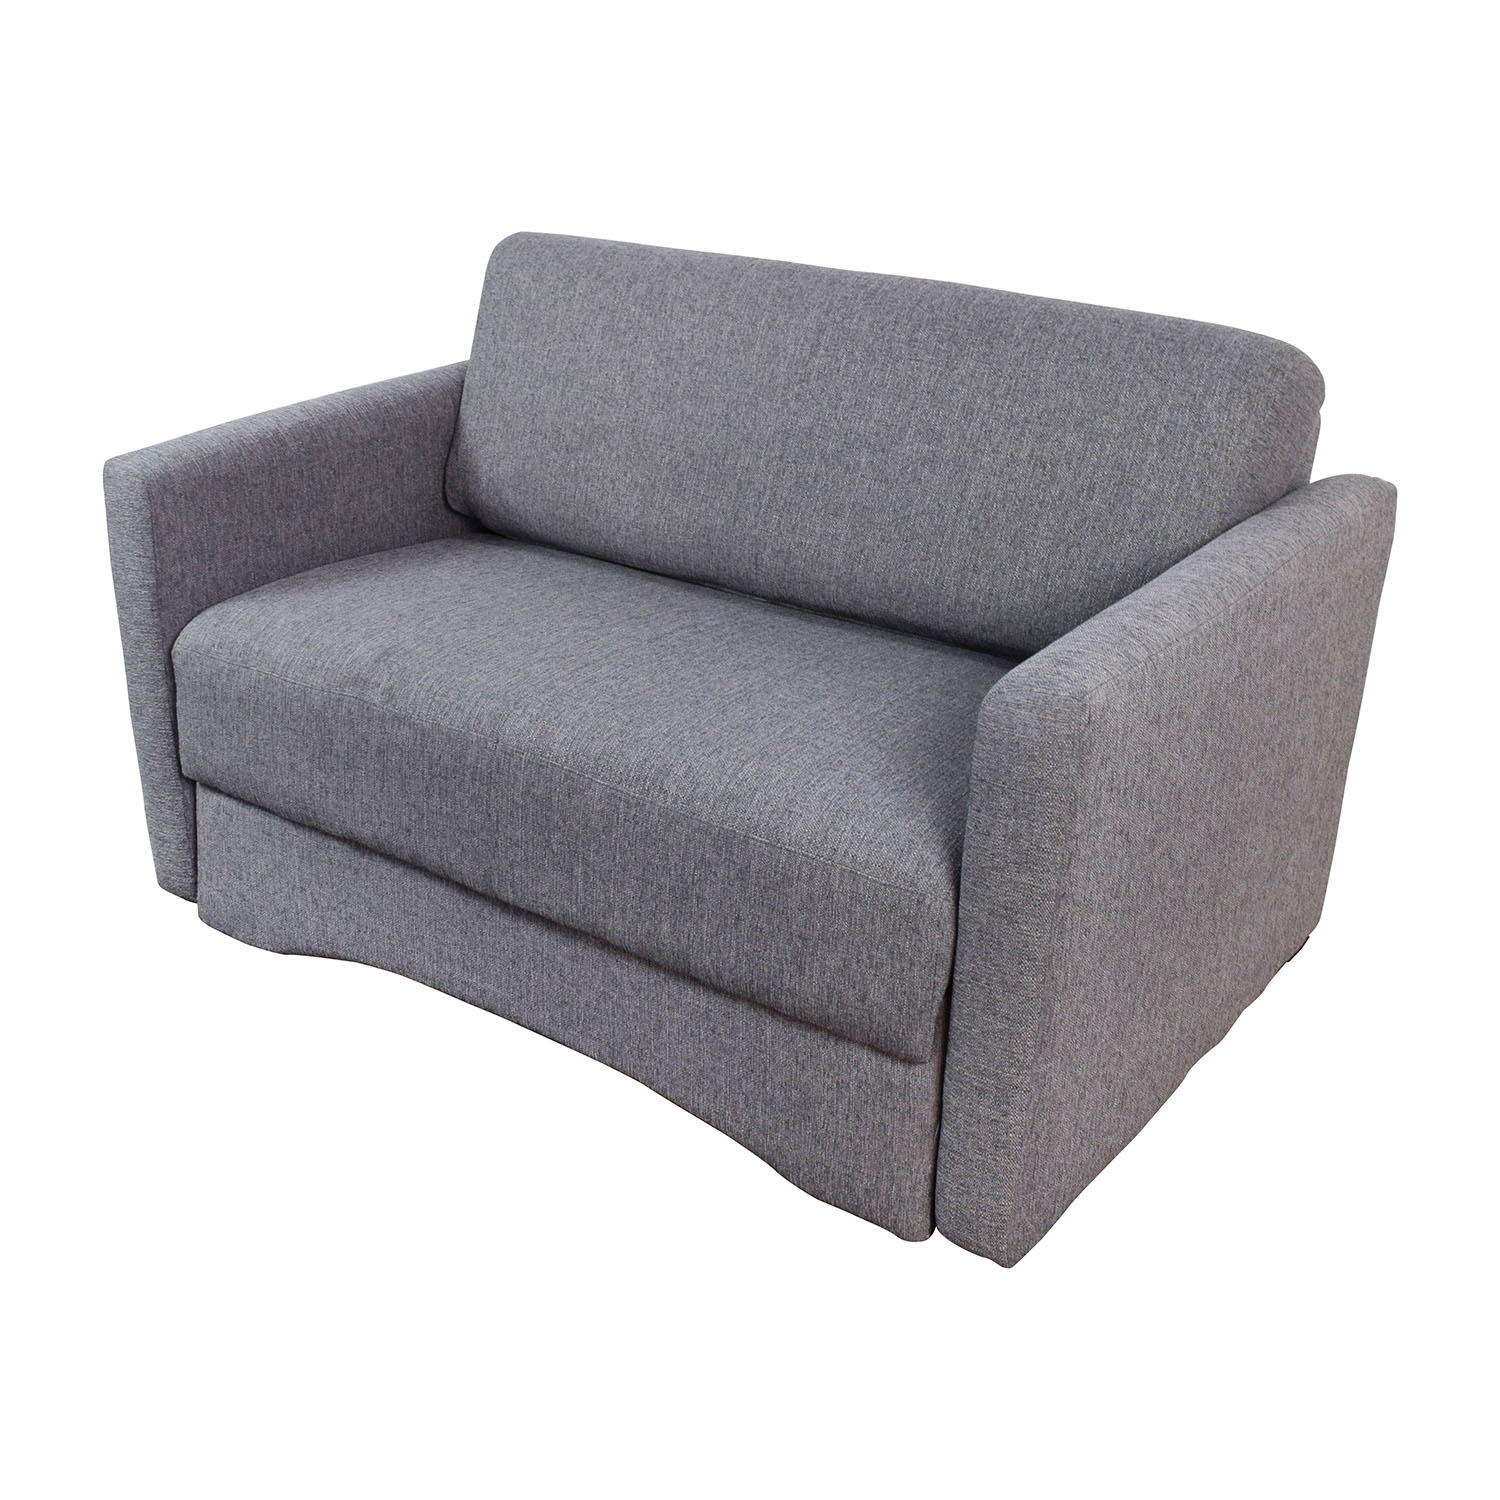 regular foter elizabeth pull loveseats explore loveseat out sleeper